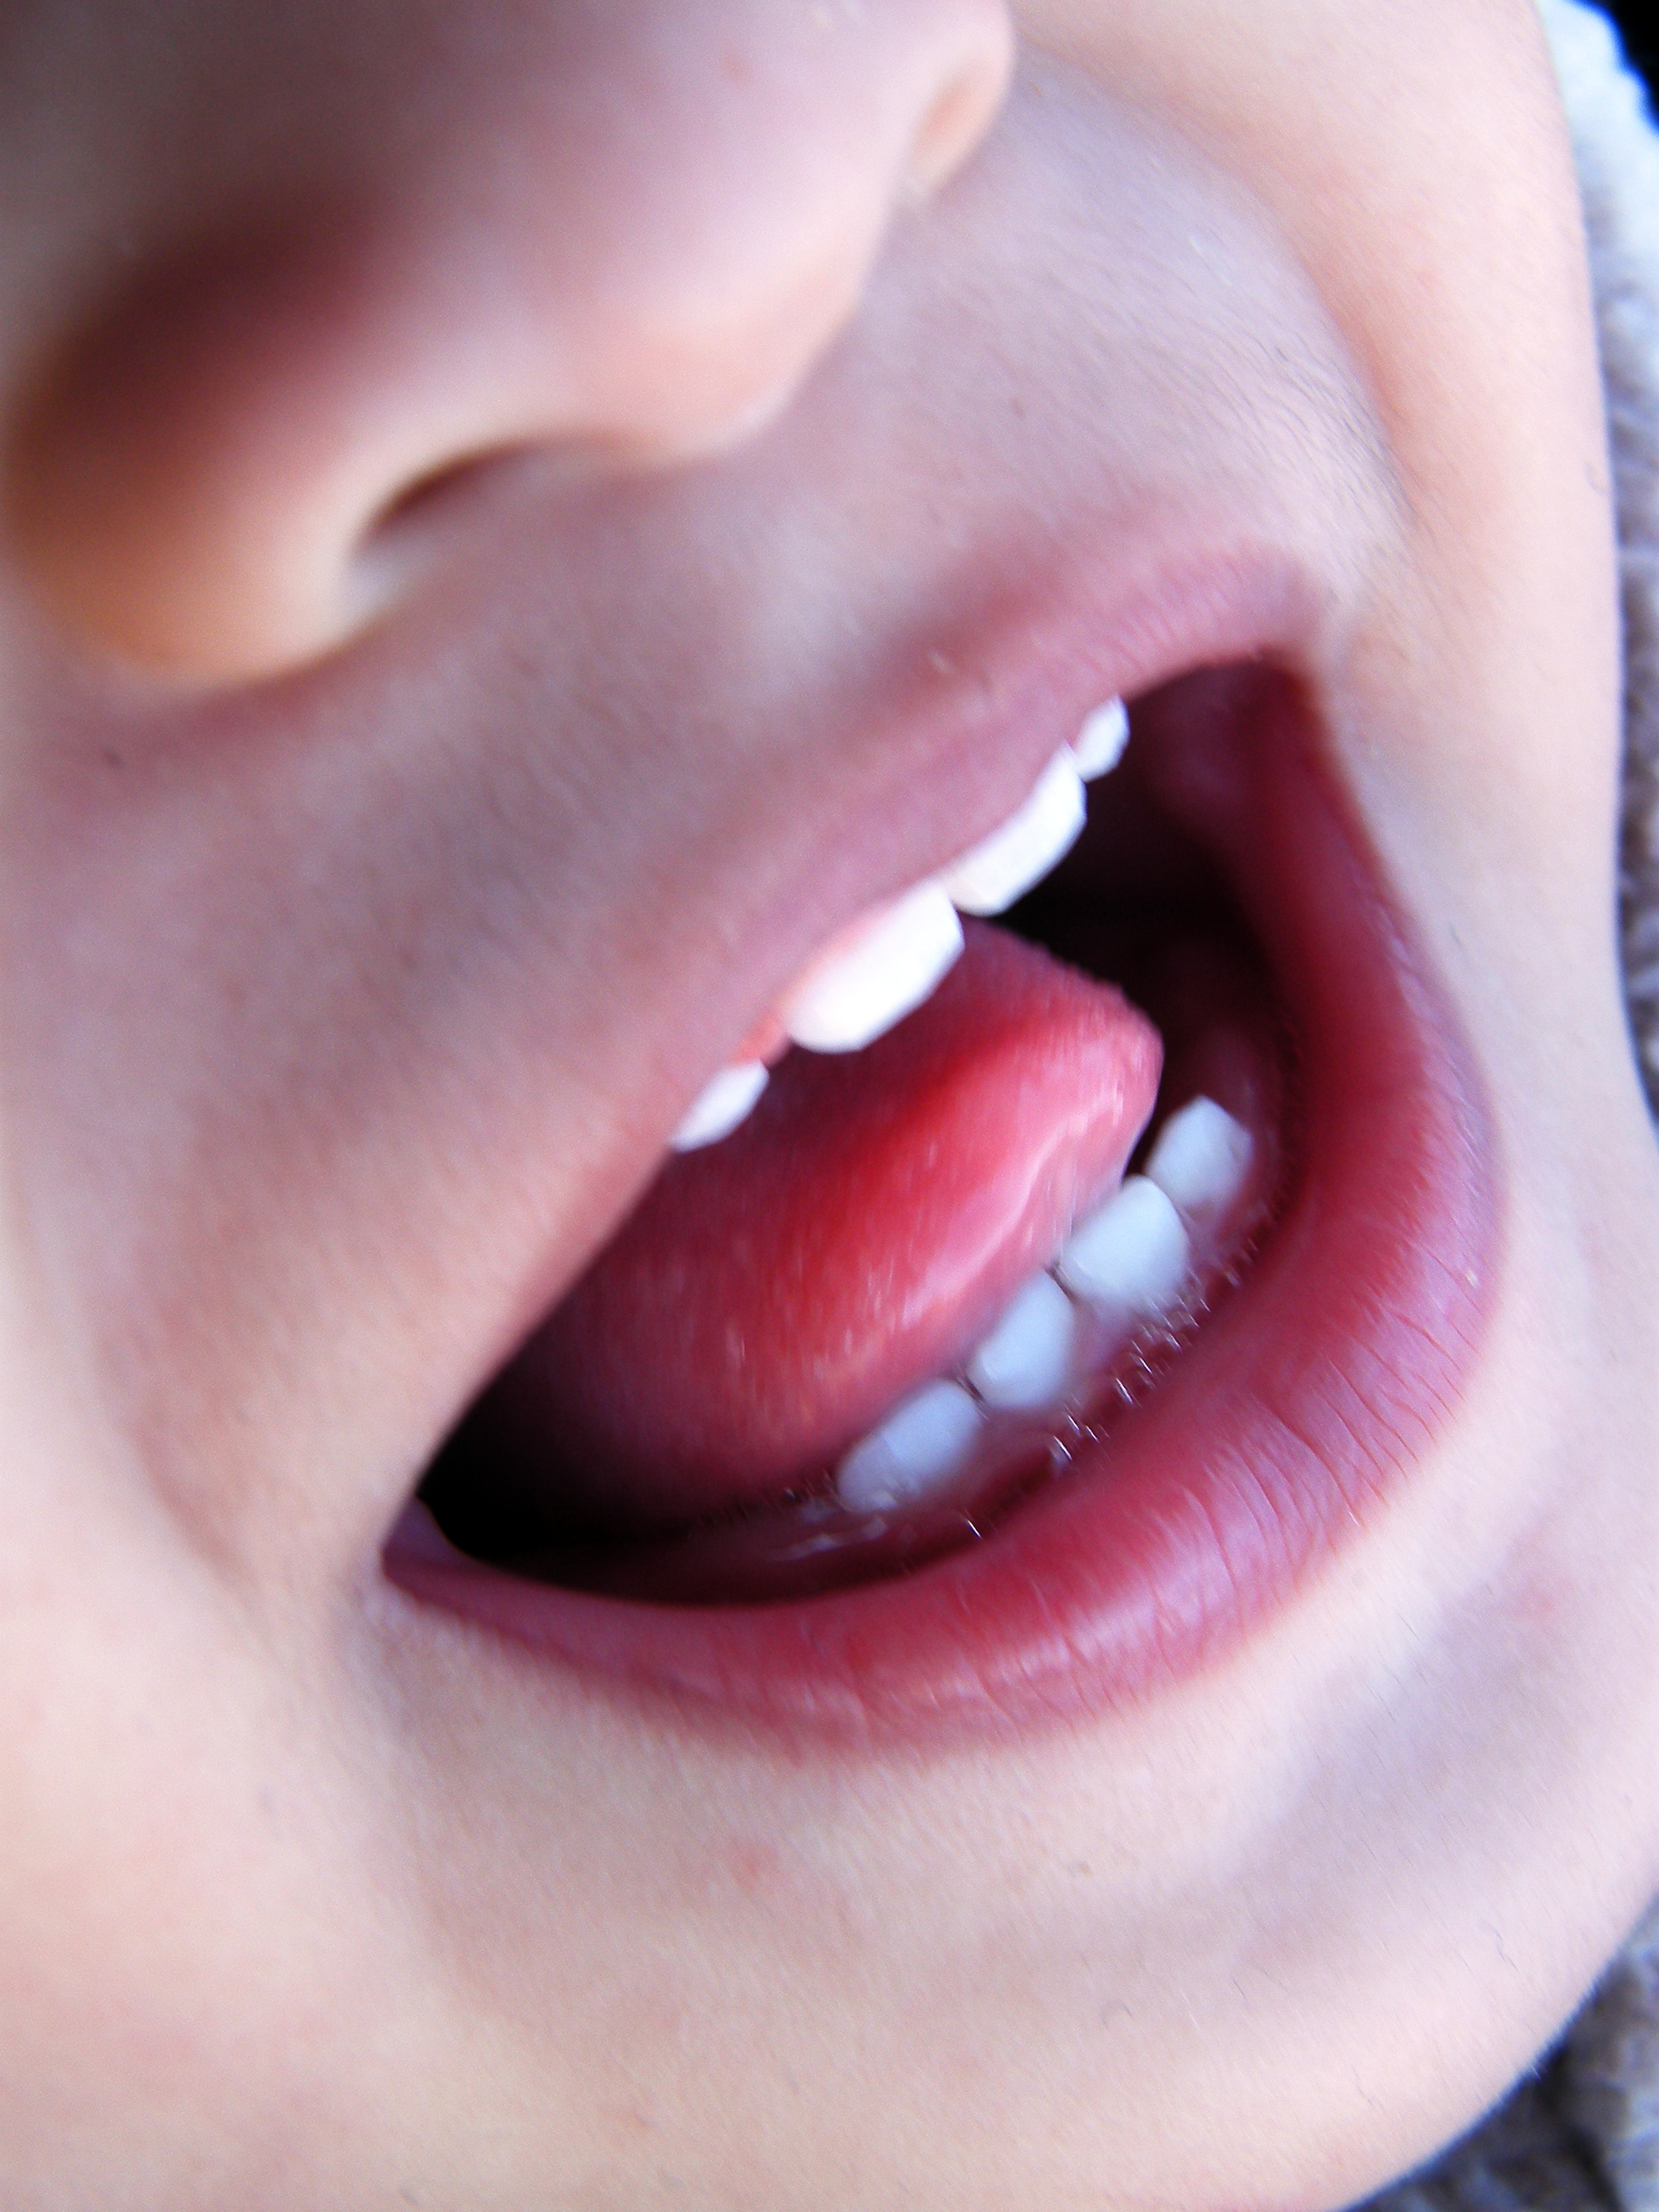 true confession tuesday: I take my kid to the dentist–but I don't believe in dentistry